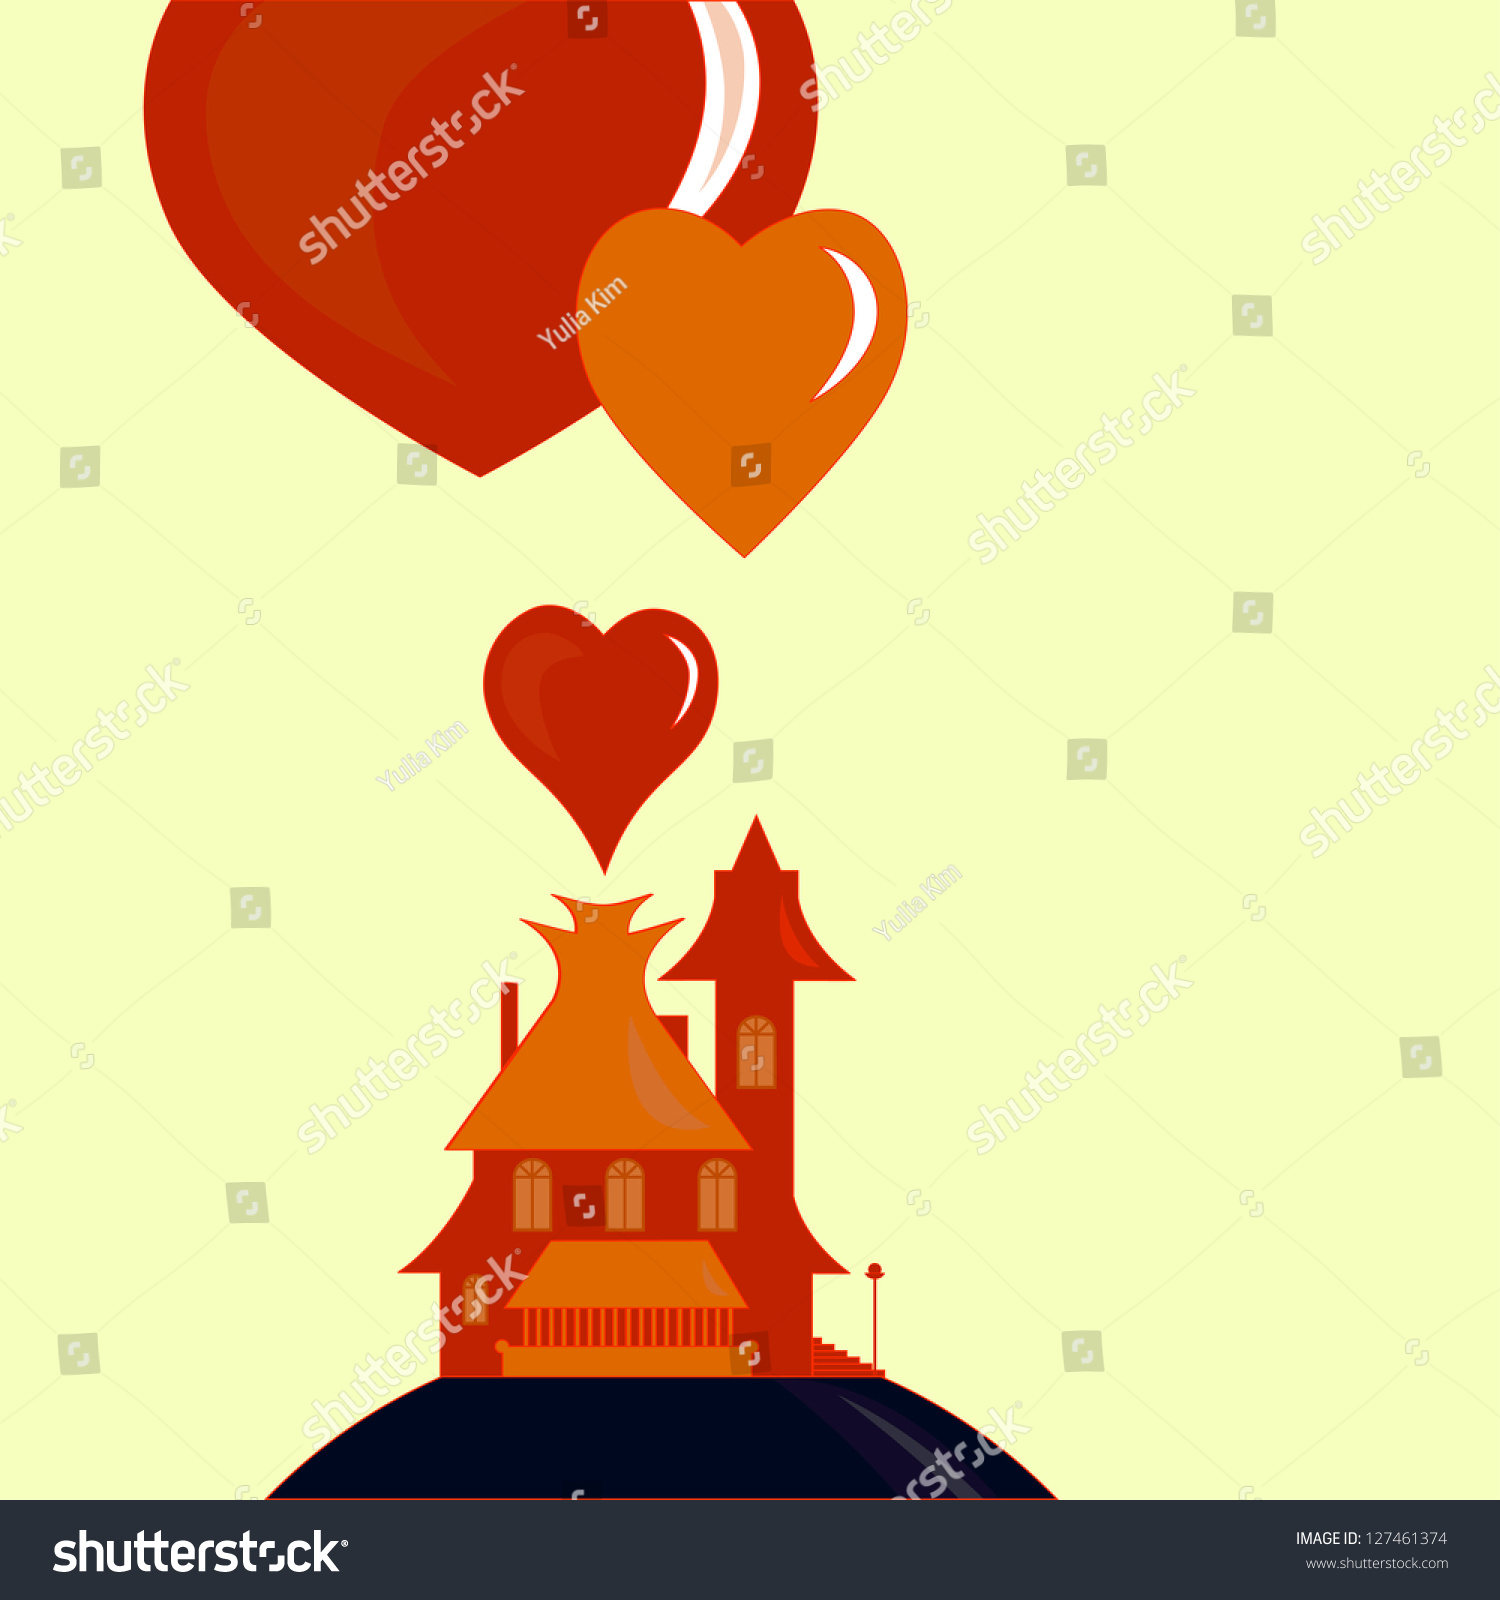 Red house flying hearts coming out stock vector 127461374 shutterstock stopboris Gallery